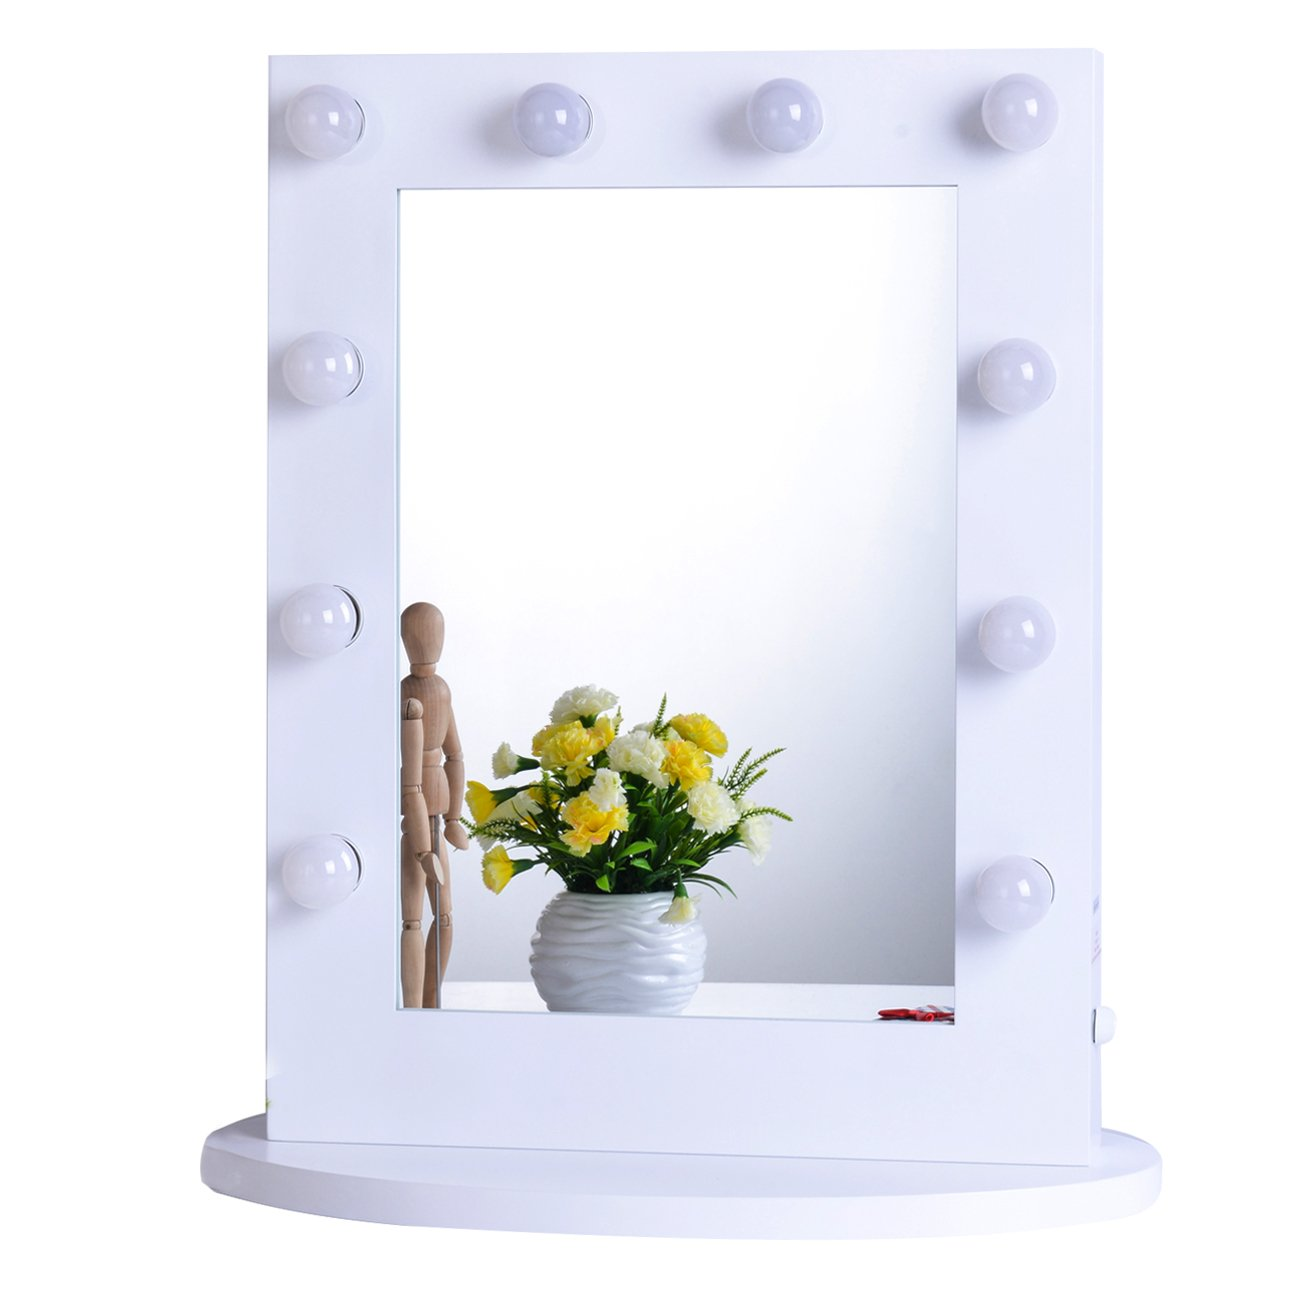 Chende Tabletop Makeup Mirror With Lights Hollywood Vanity Wall Mount Chende Hollywood Vanity Mirror